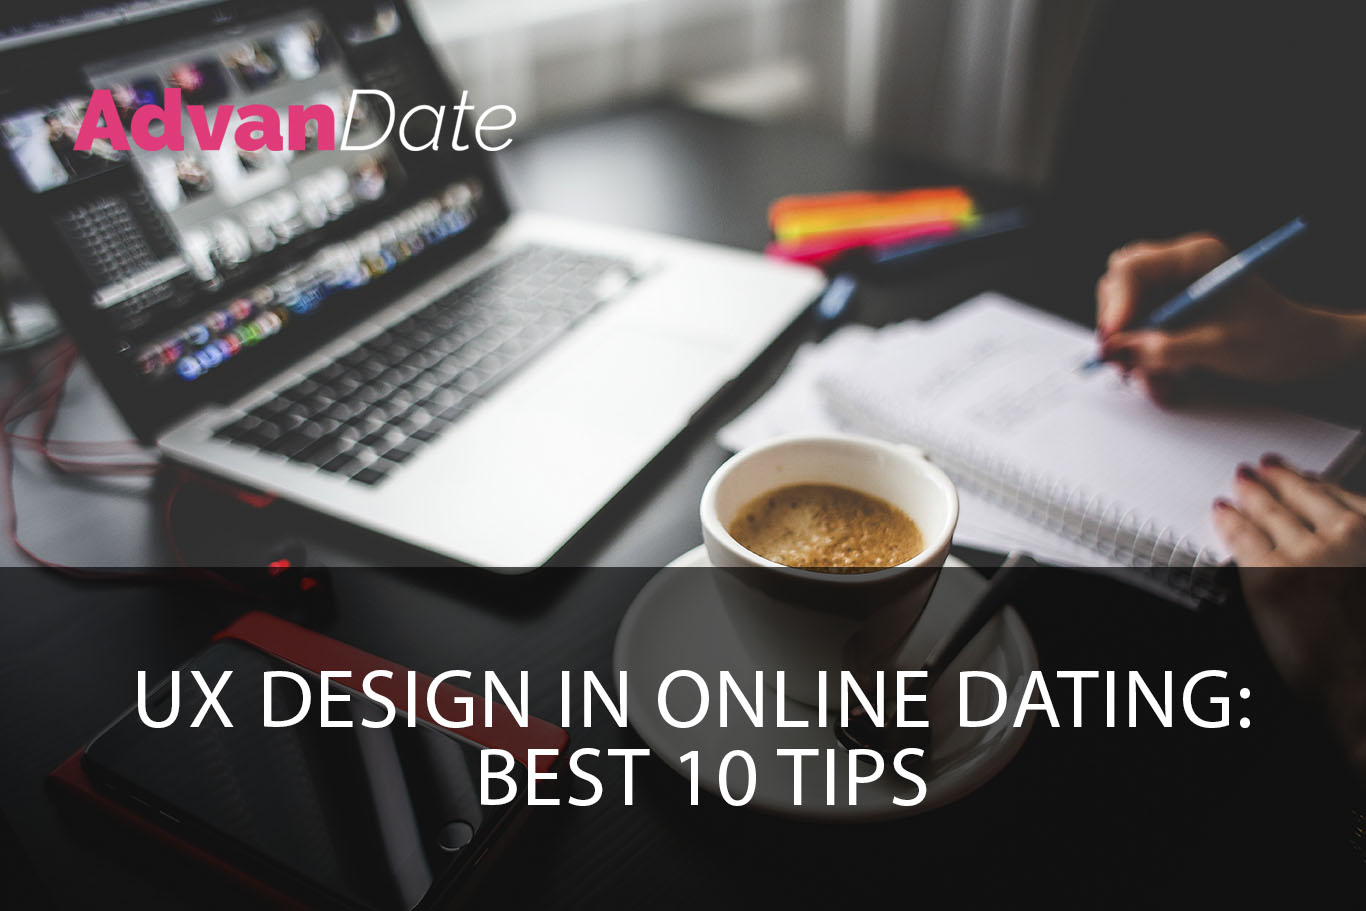 UX design in online dating: best 10 tips